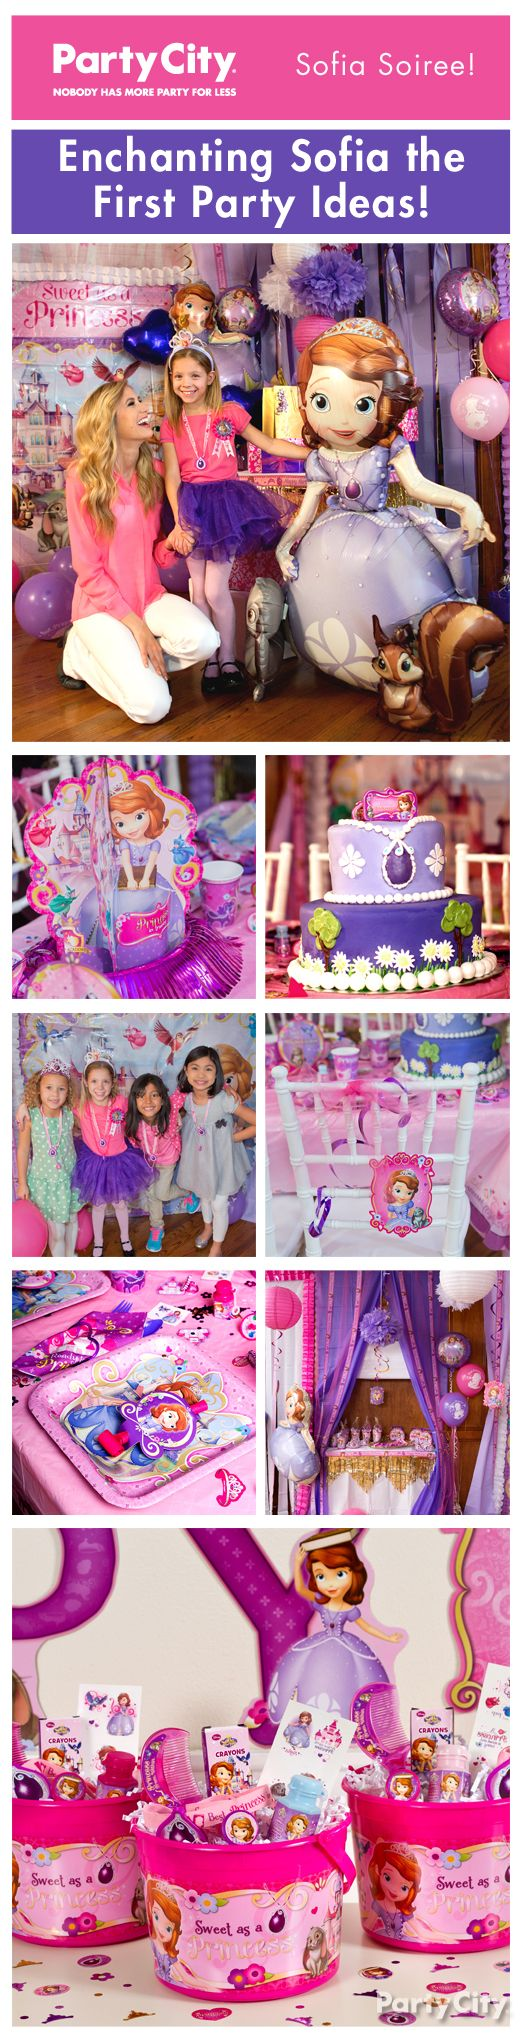 41 best Party City images on Pinterest